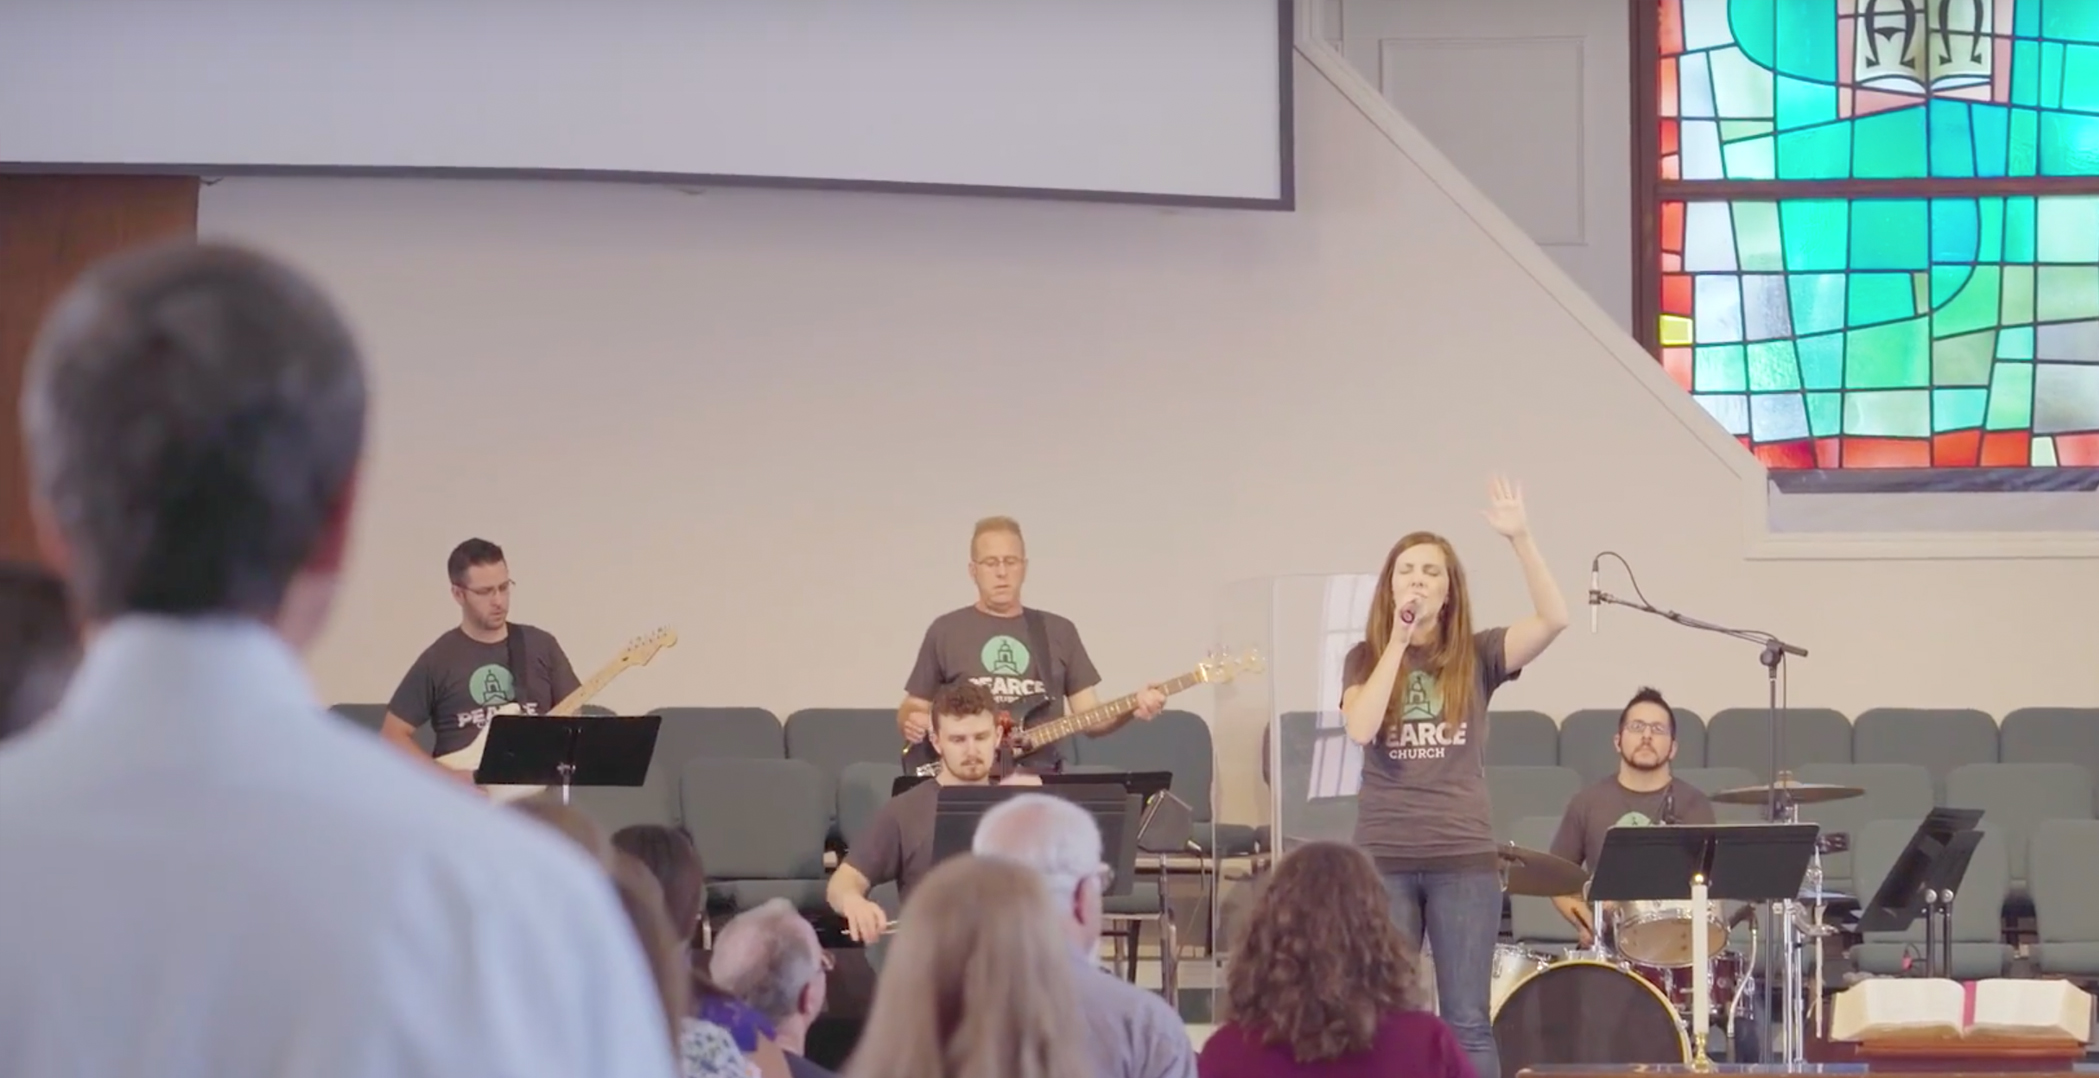 Worship team during worship at the contemporary service at Pearce Church in Rochester, NY